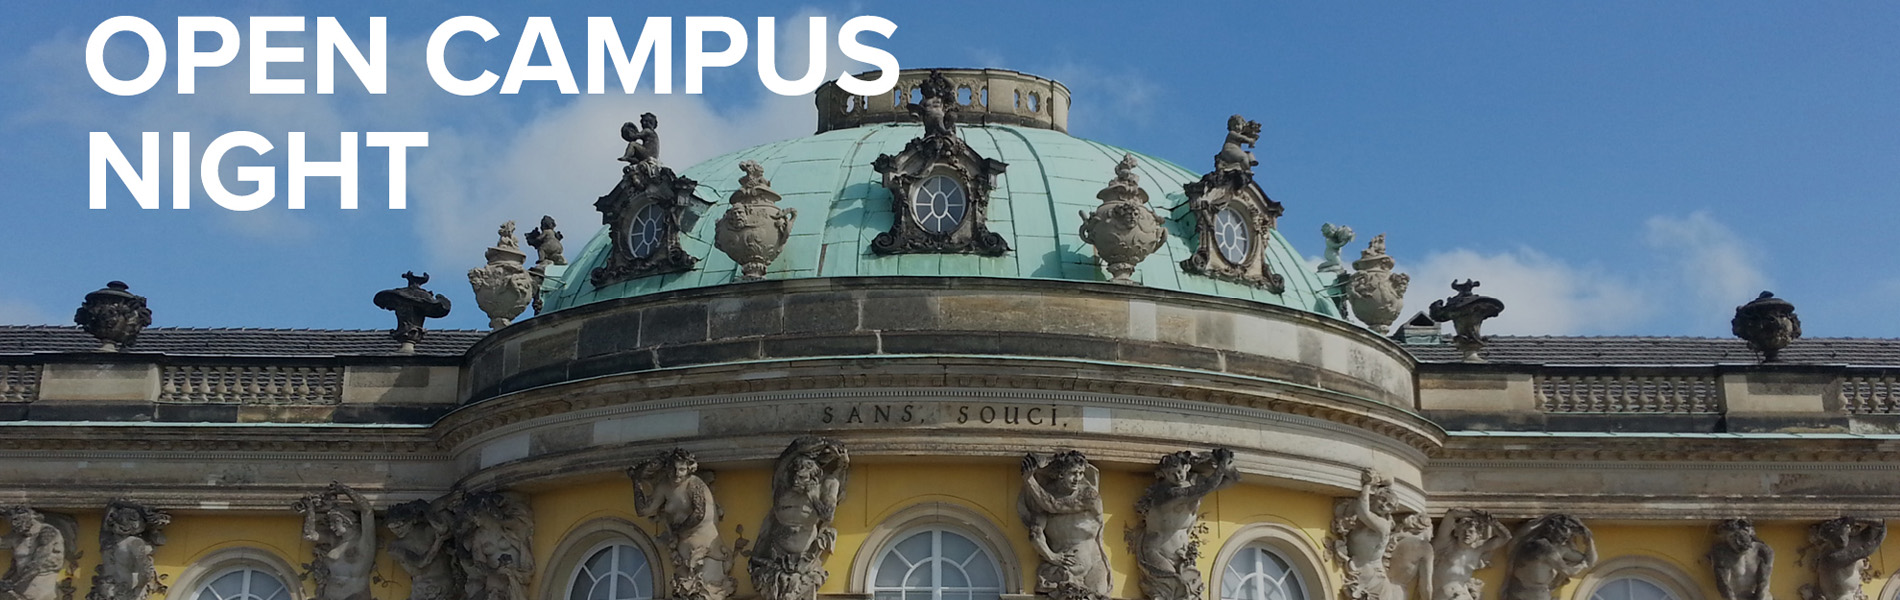 Open Campus Night – Potsdam